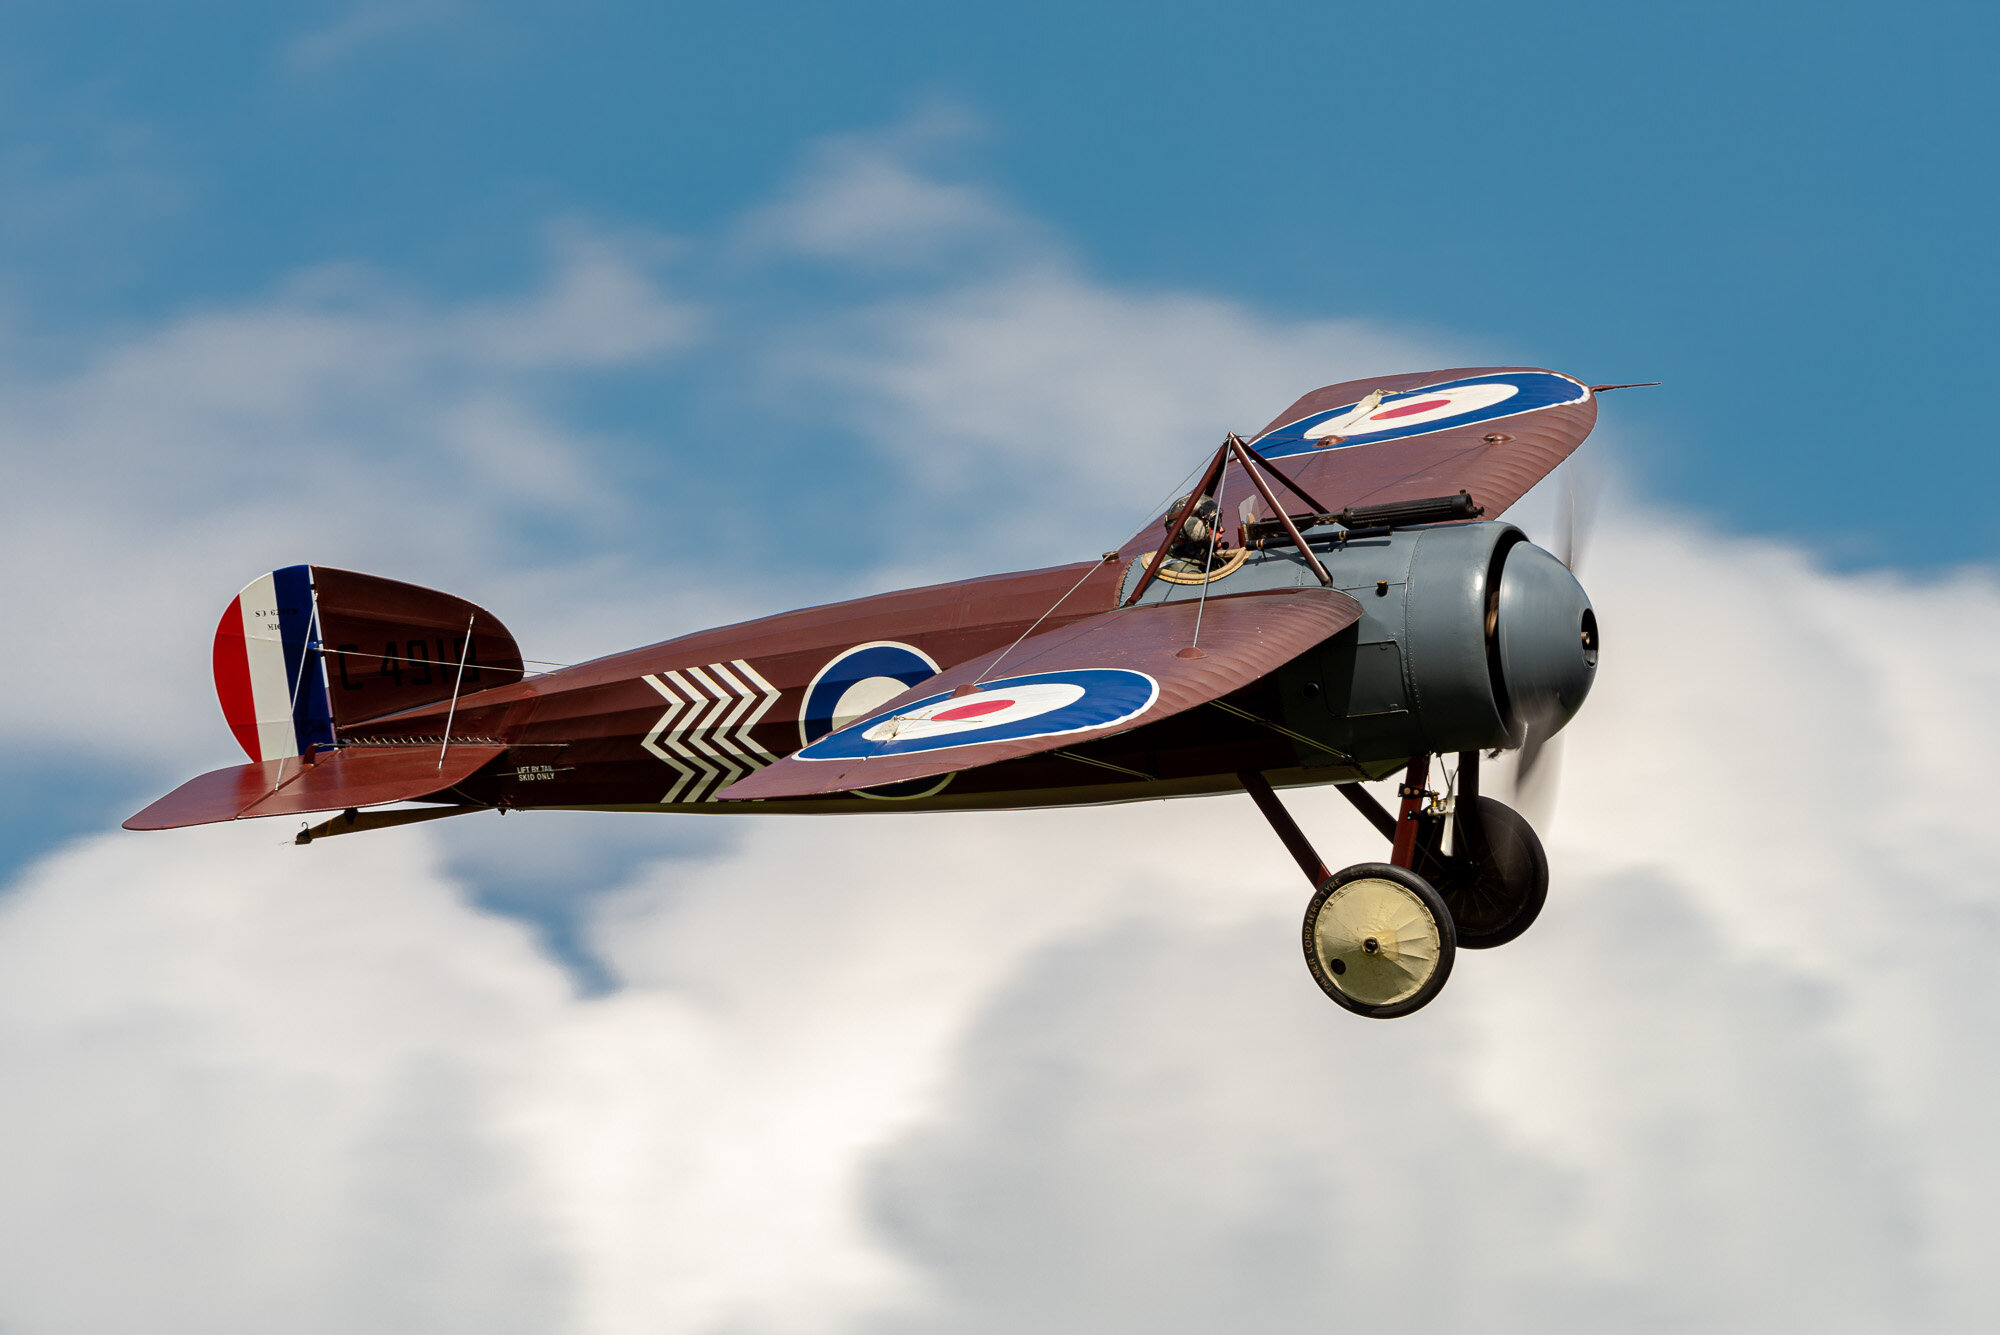 Bristol Monoplane of the Shuttleworth collection. Nikon D810, 500 PF, f/10, 1/250 sec, ISO 64.